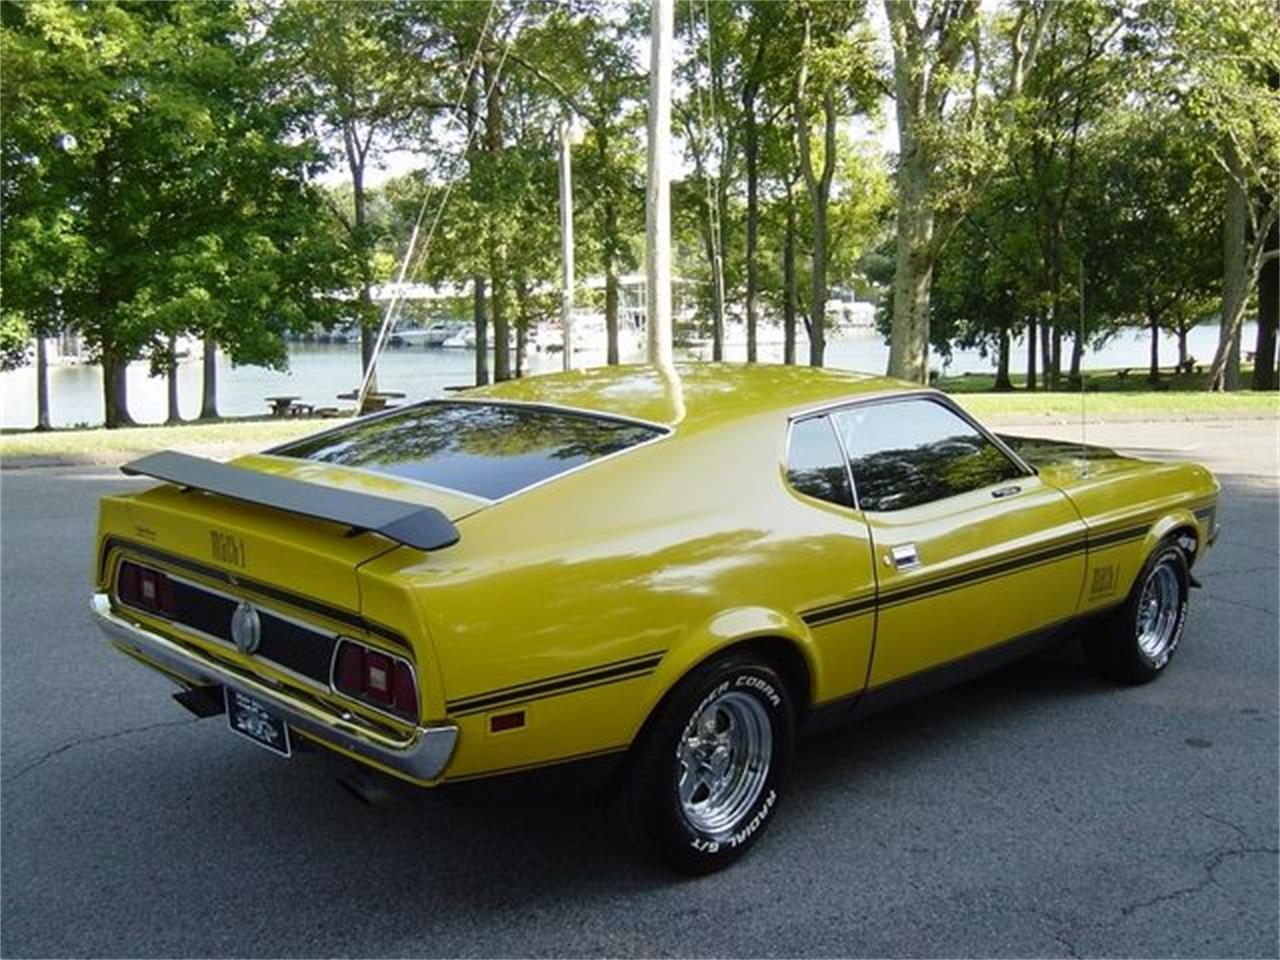 1972 Ford Mustang Mach 1 (CC-1265459) for sale in Hendersonville, Tennessee